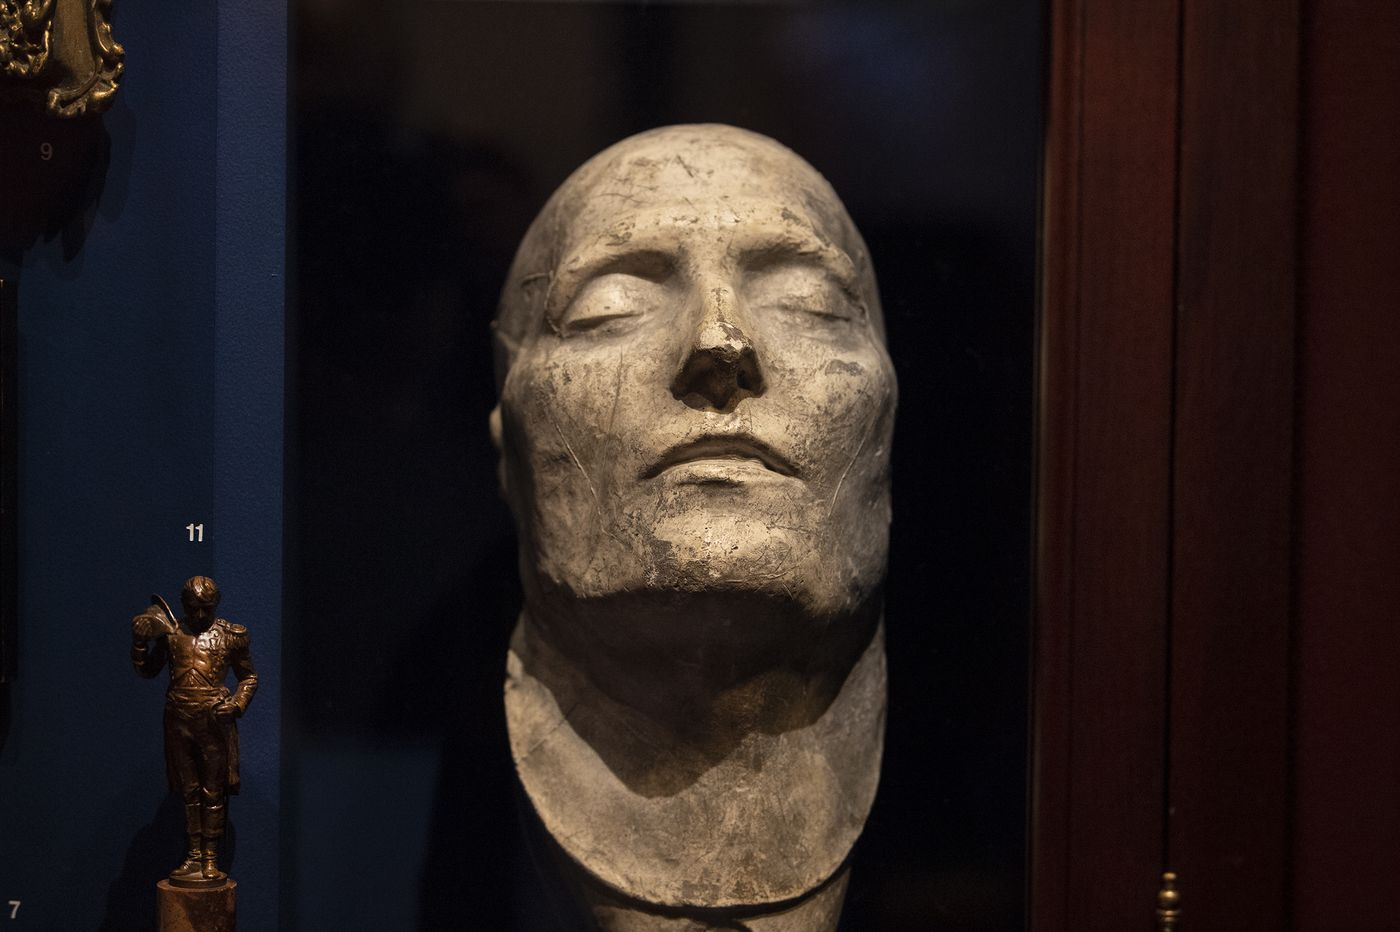 Visit this hidden Philly gem to see Napoleon's death mask and his brother Joe's toiletry kit